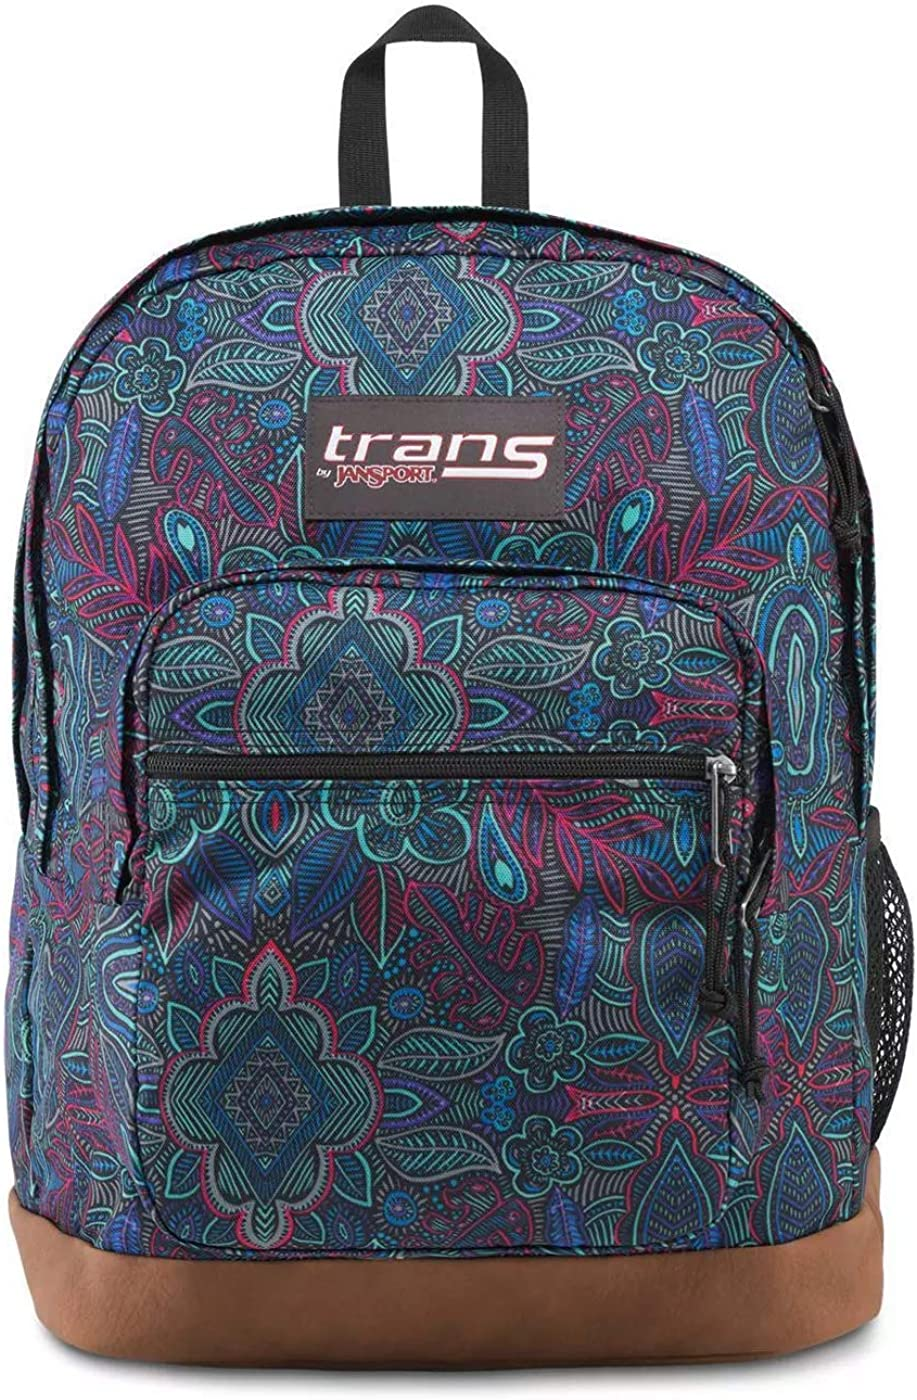 Trans by JanSport 17 Super Cool Backpack - Peacock Garden